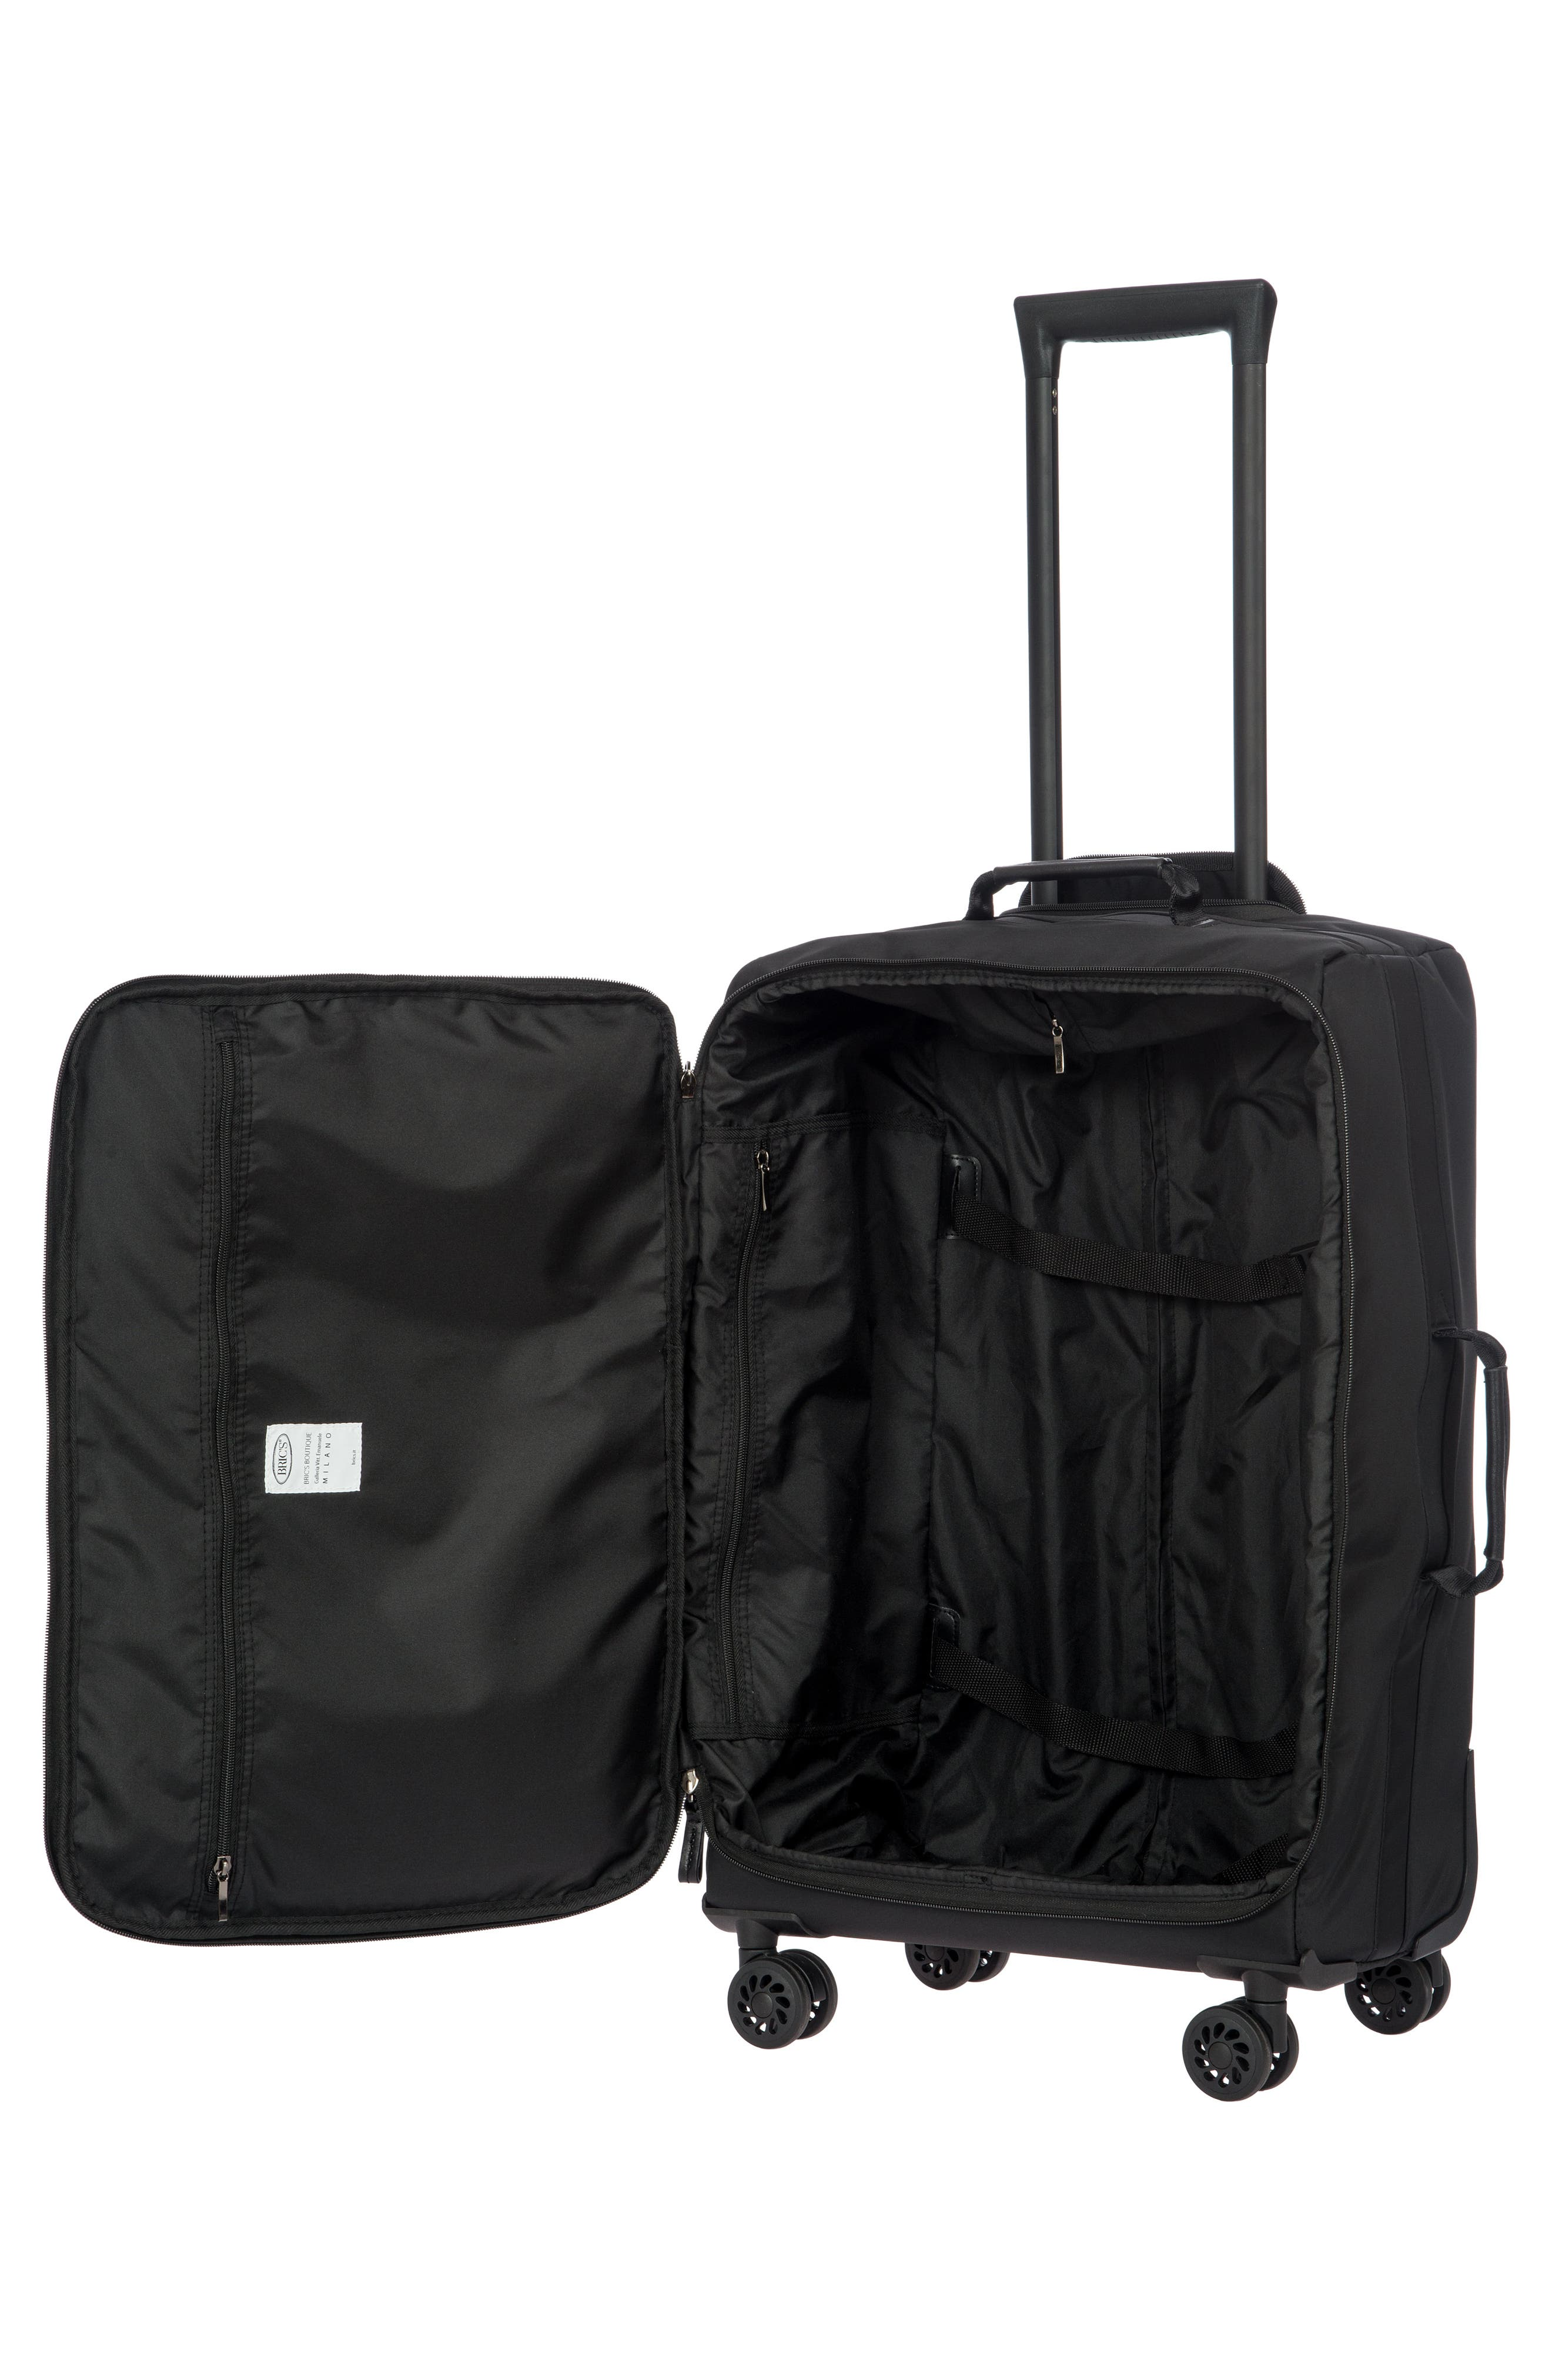 X-Bag 25-Inch Spinner Suitcase,                             Alternate thumbnail 2, color,                             Black/ Black